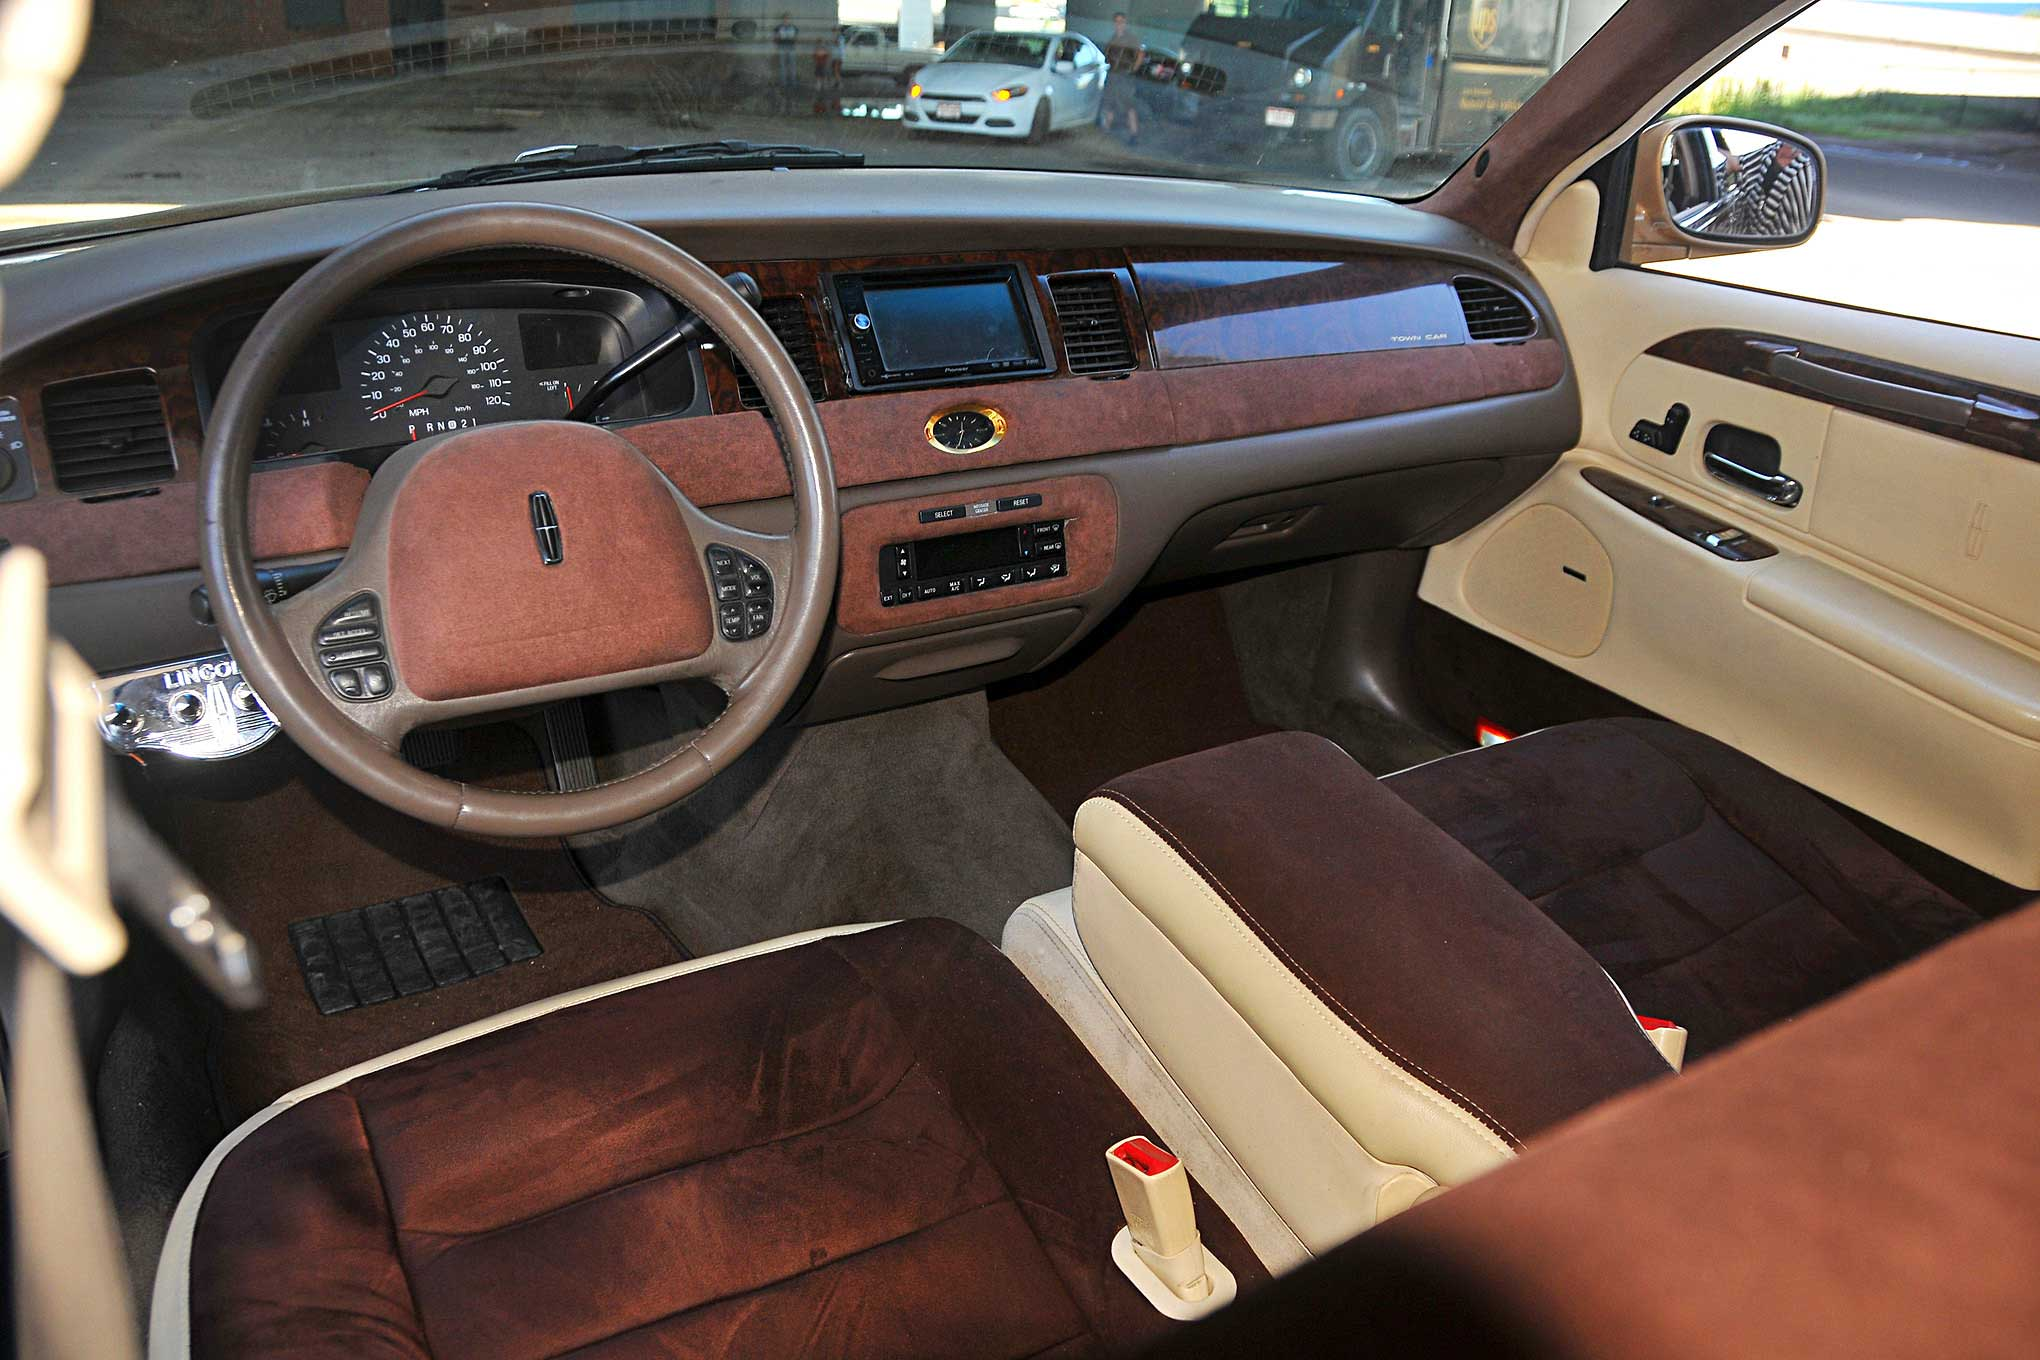 1998 Lincoln Towncar Dash